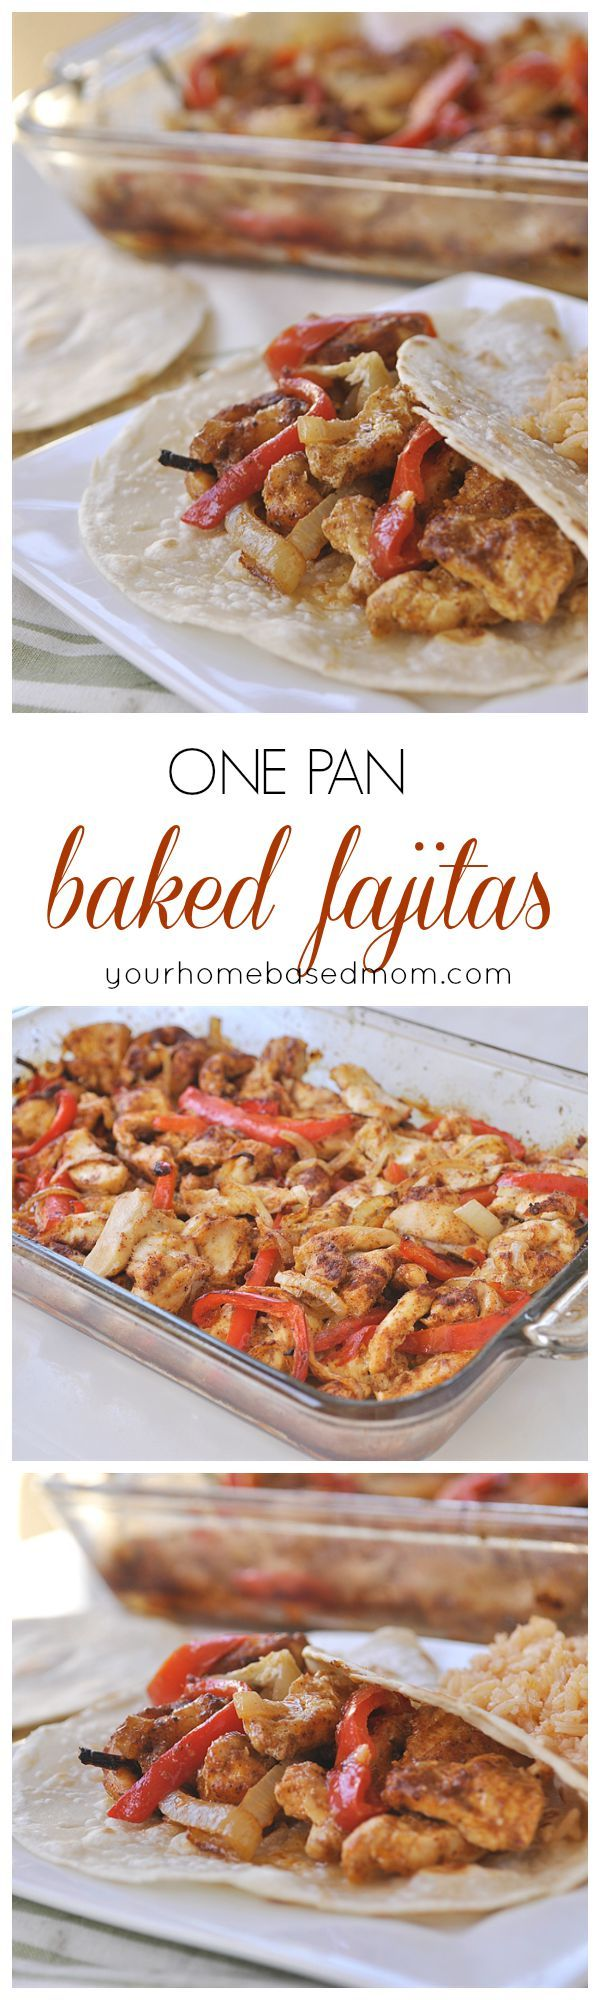 I cannot believe how much my kids loved this! One Pan Baked Fajitas are the perfect dinner solution!